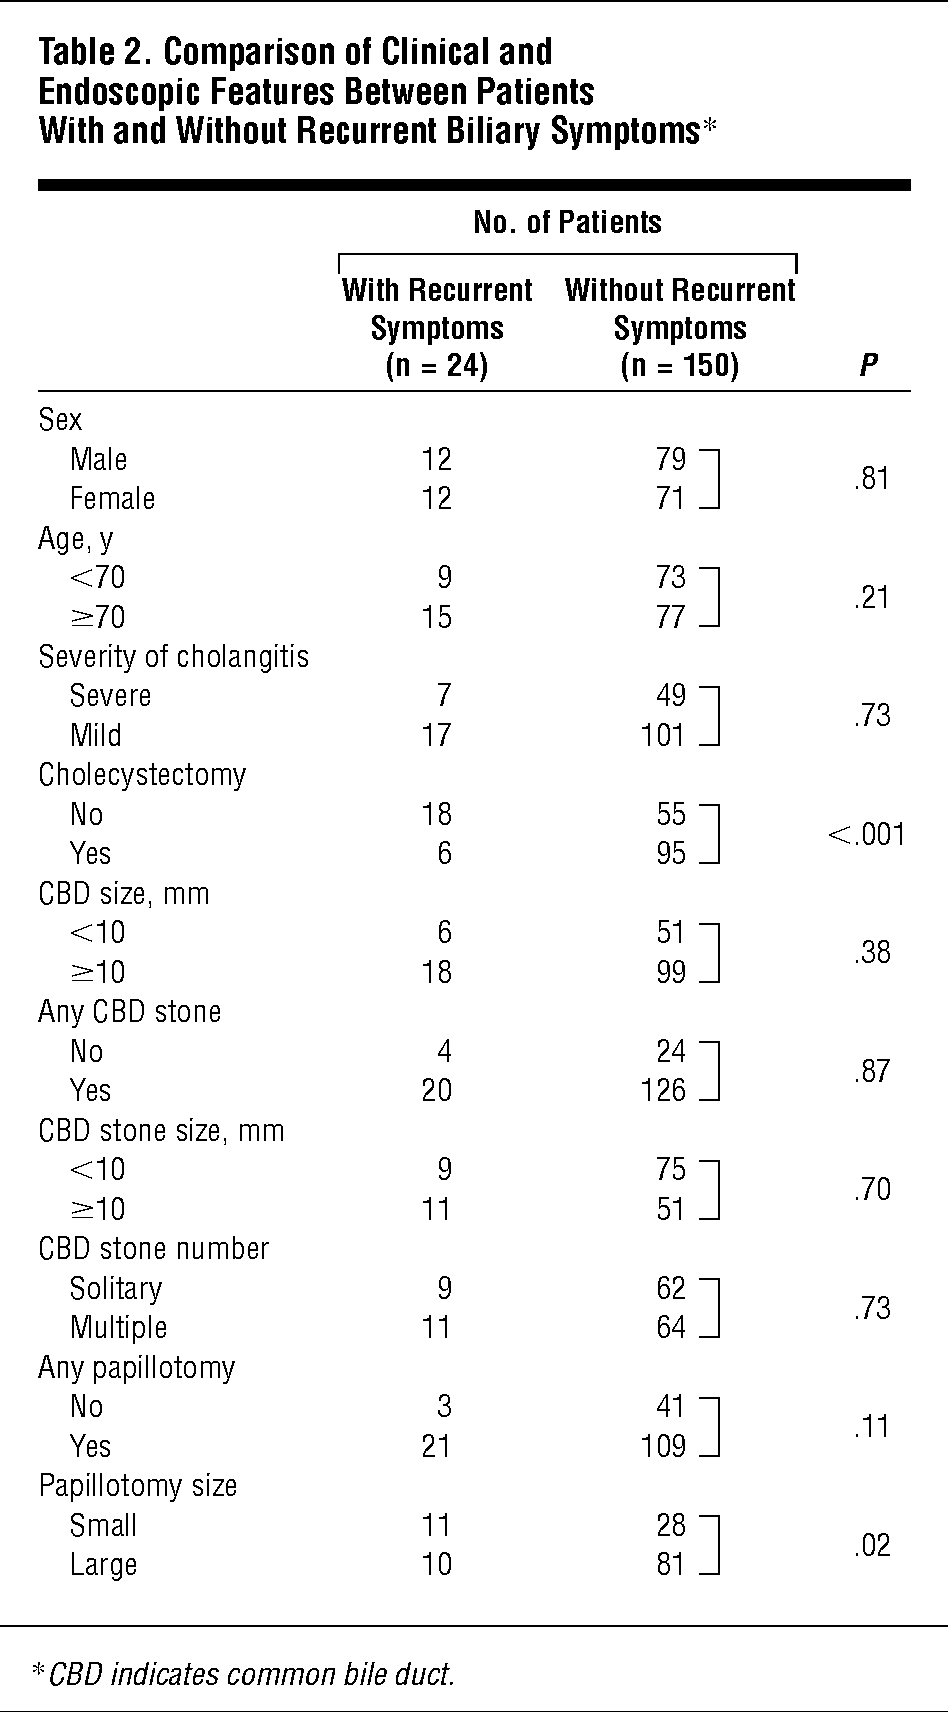 Comparison Of Clinical And Endoscopic Features Between Patients With Without Recur Biliary Symptoms